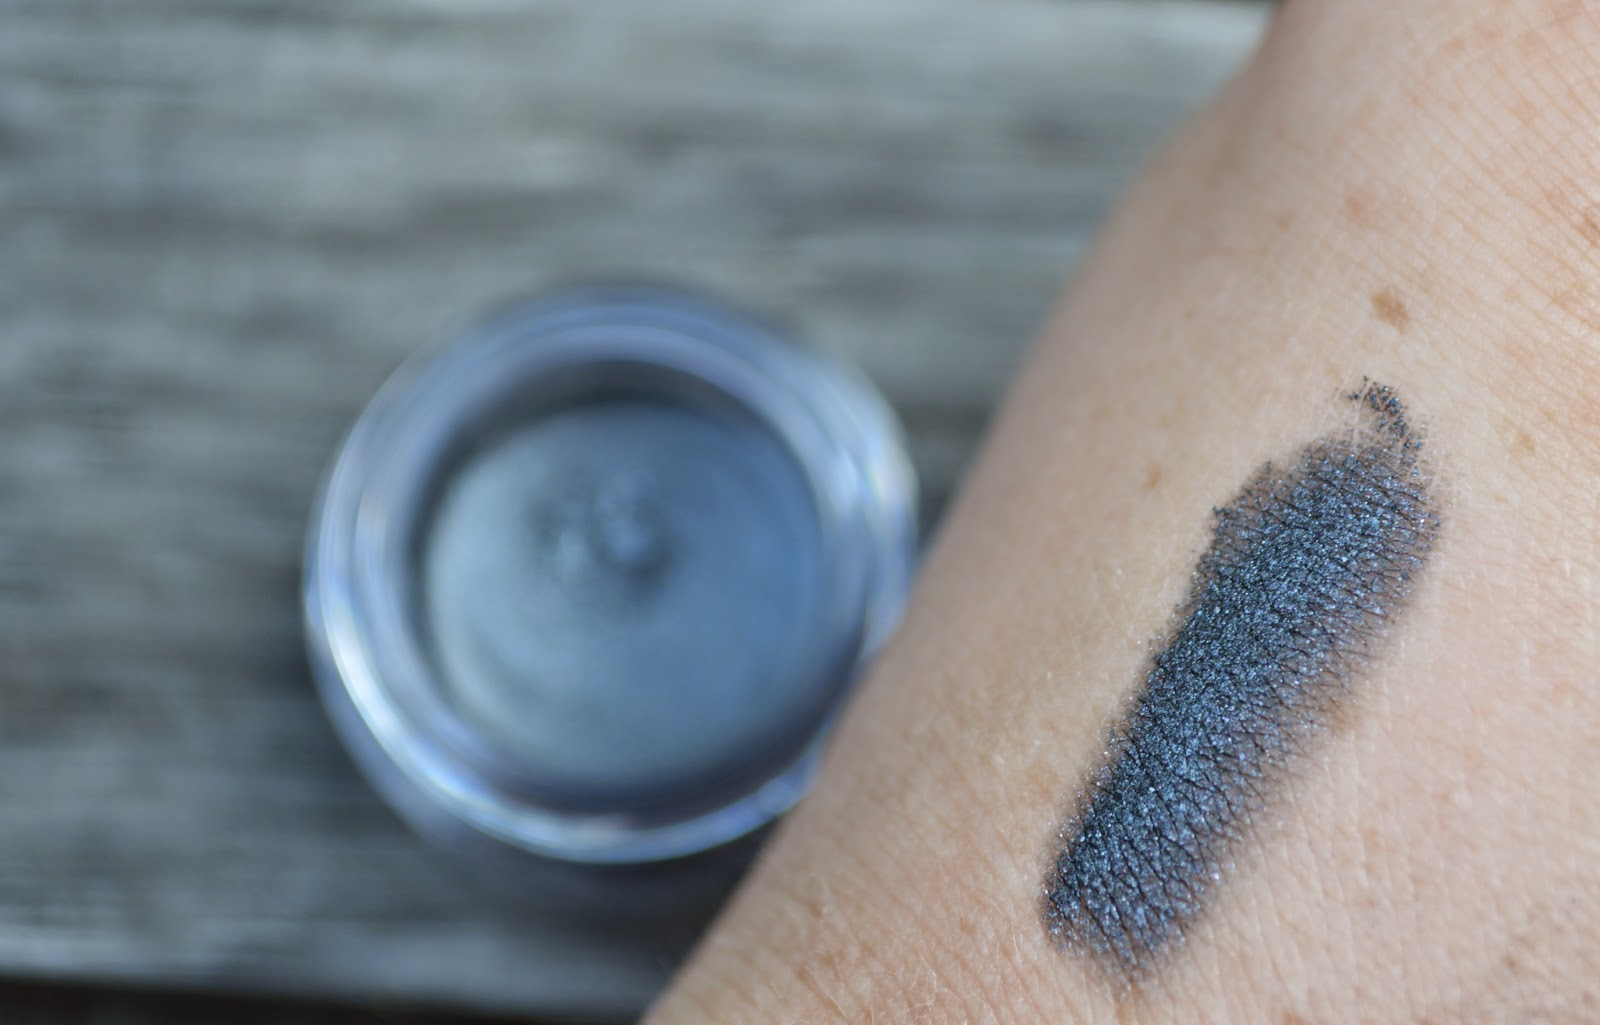 B.Stunning Vibrant Eye Shimmer in 190 Graphite